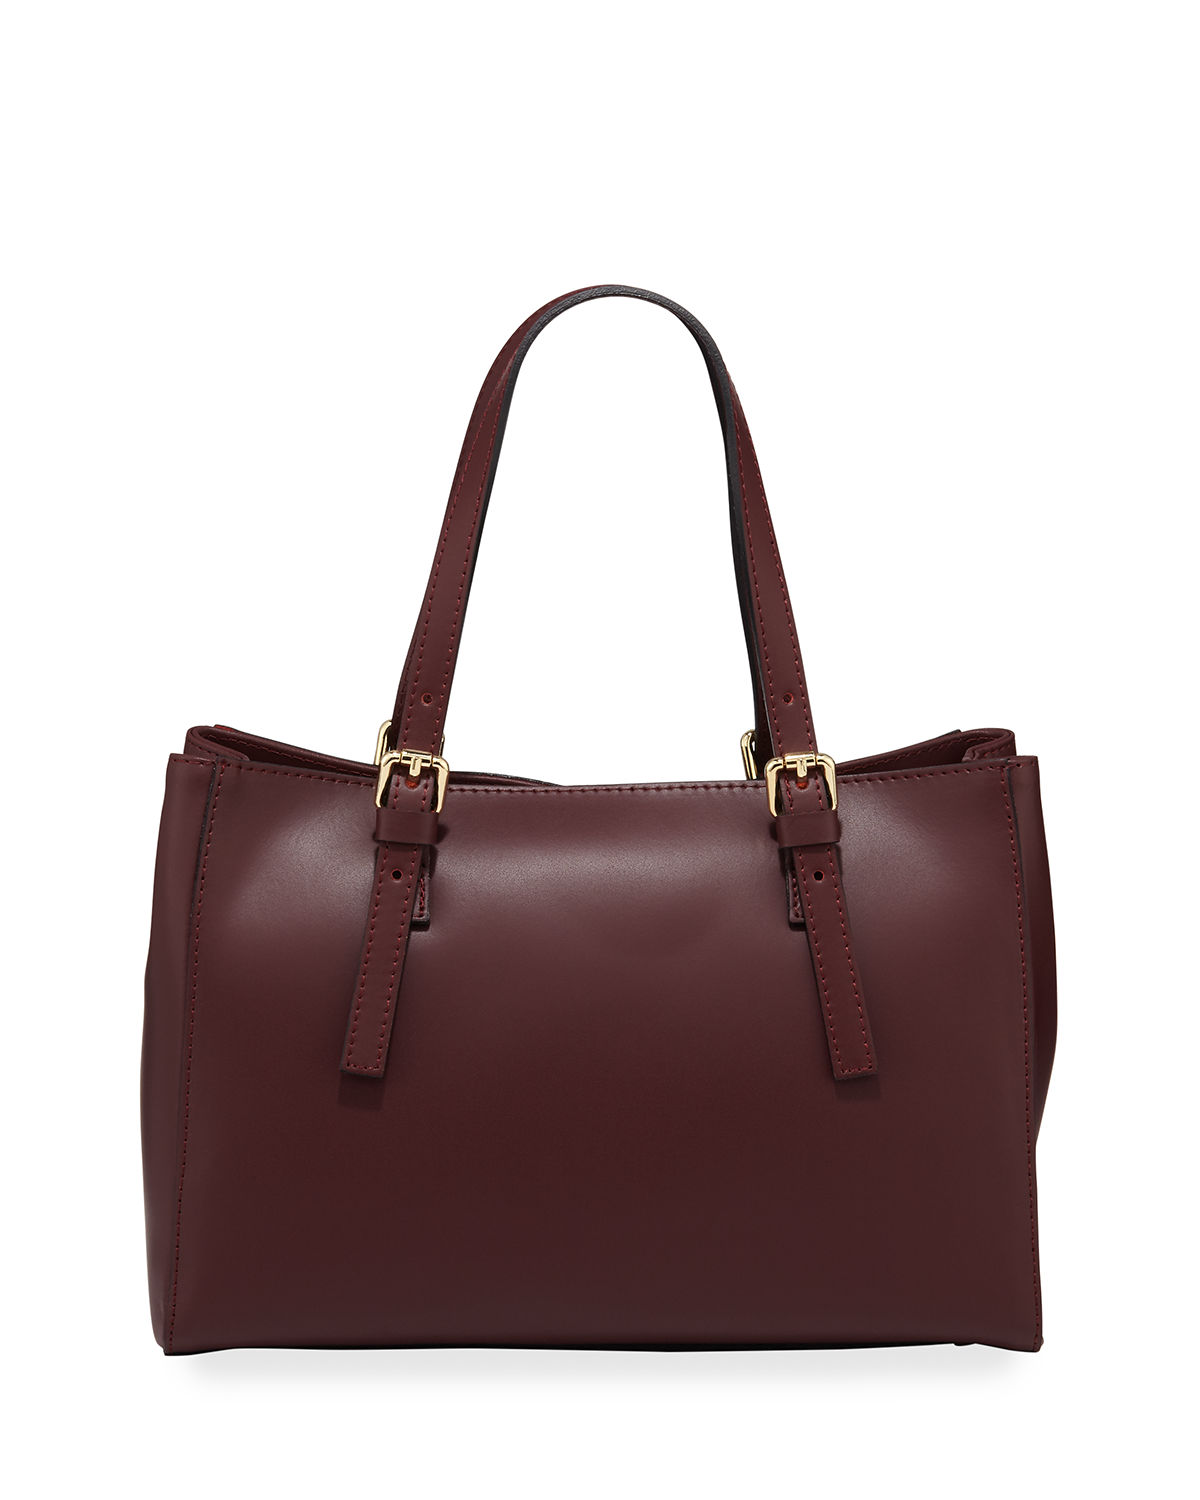 Buckled Top Handle Satchel Bag